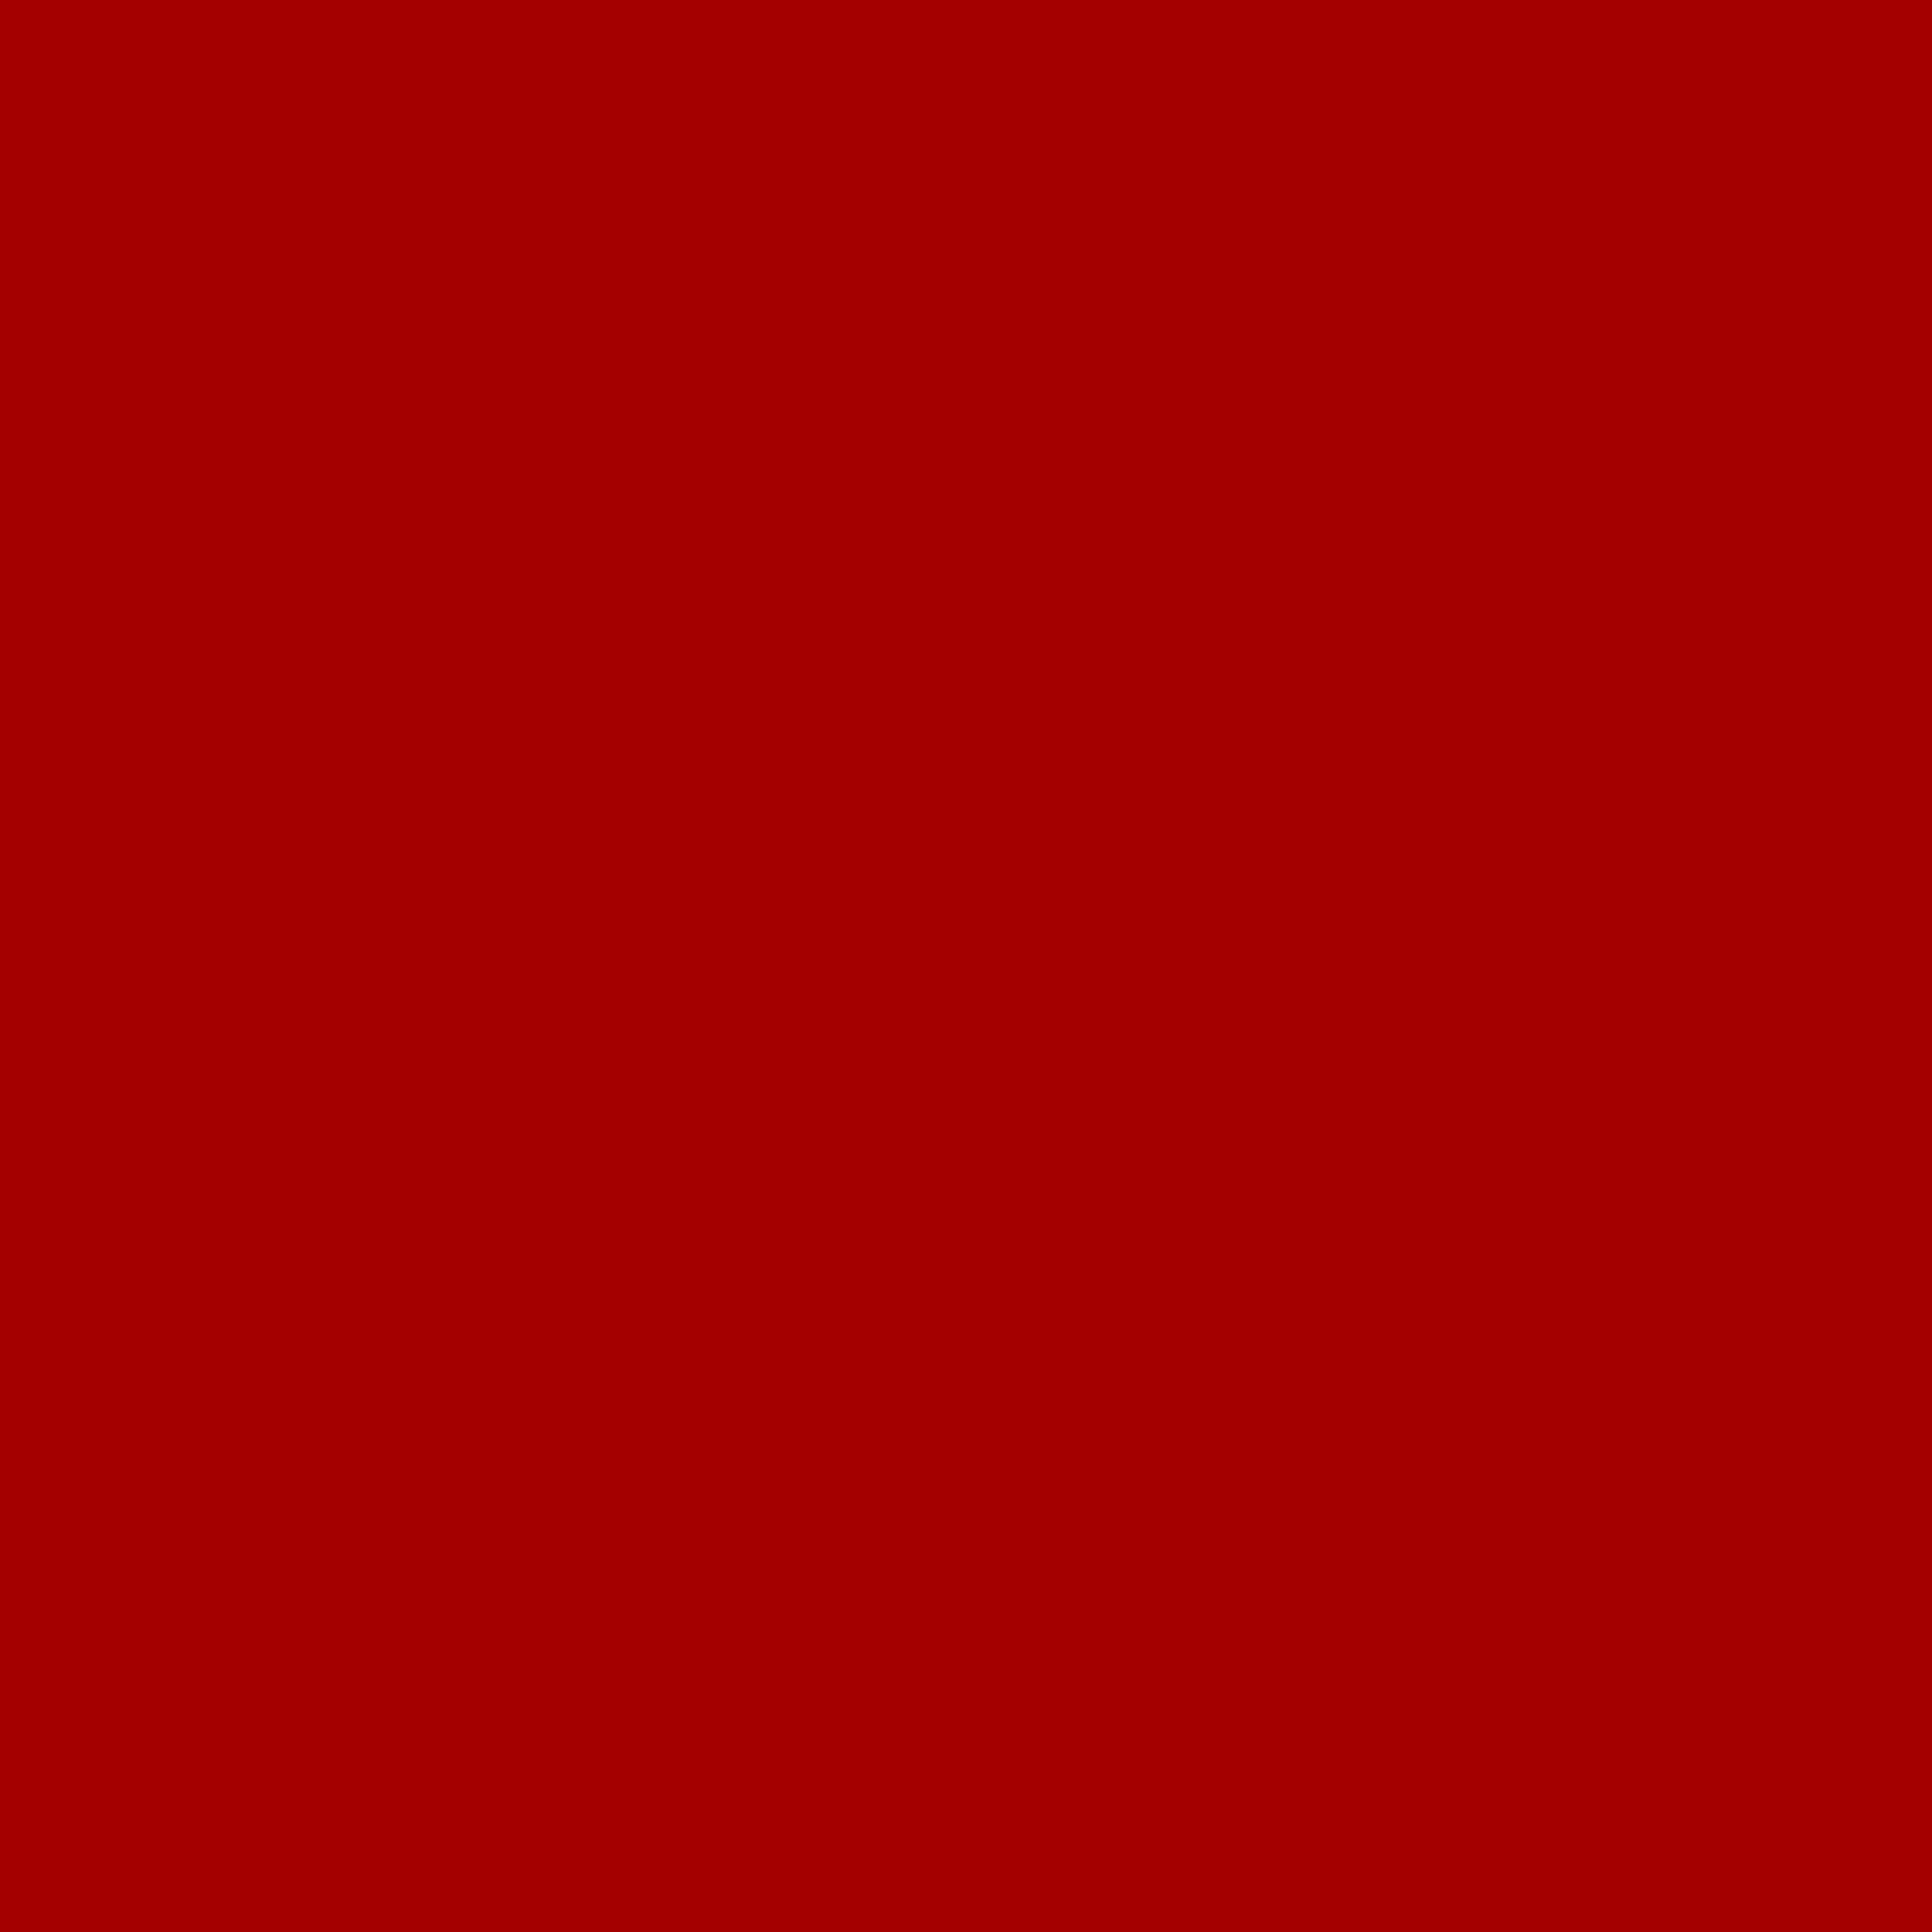 3600x3600 Dark Candy Apple Red Solid Color Background